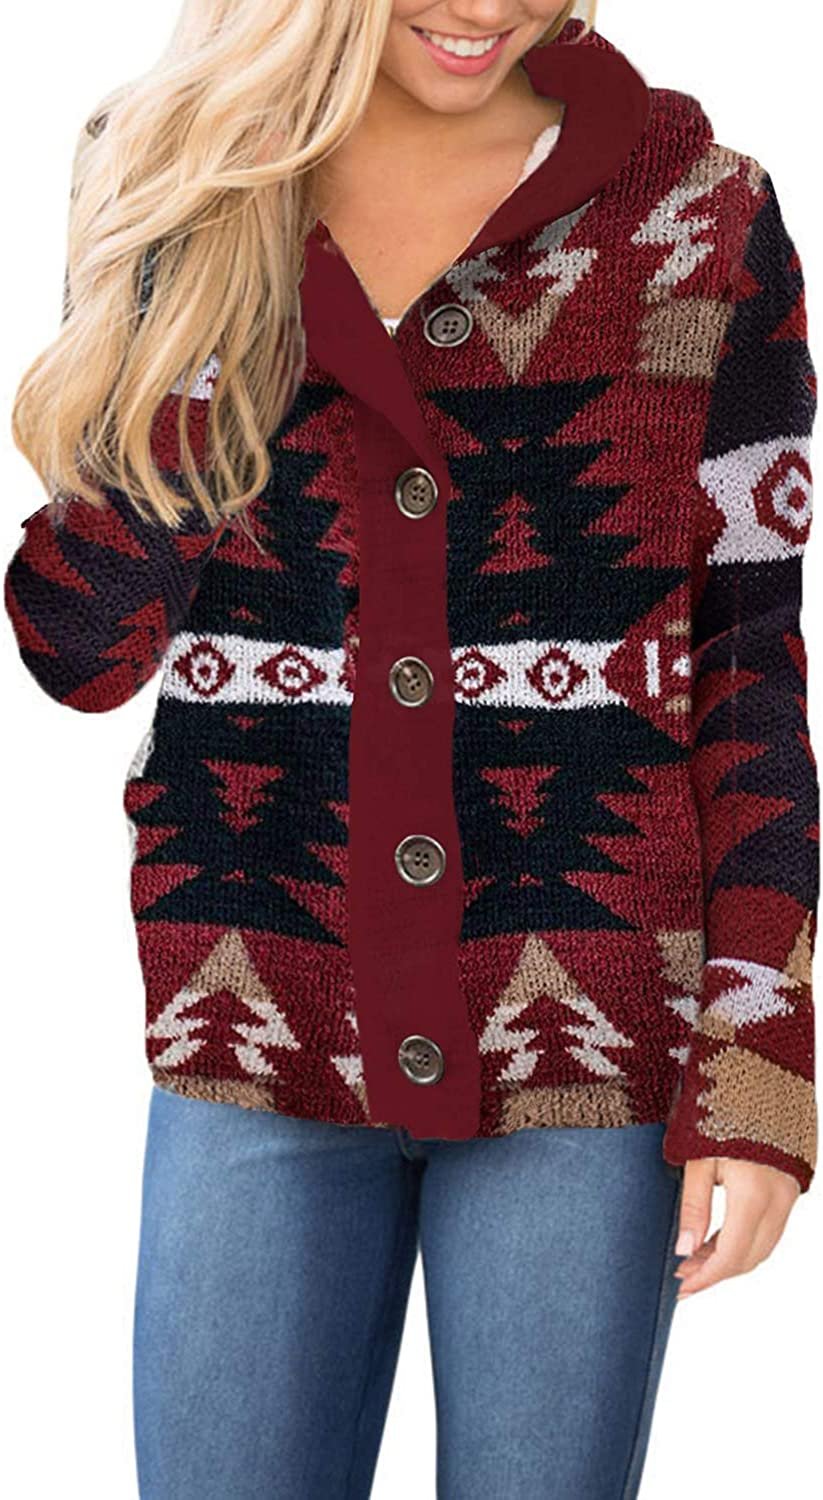 HOTAPEI Womens Warm Knit Sweater Cardigans Tucson Mall Recommended Coat Hooded Button-up